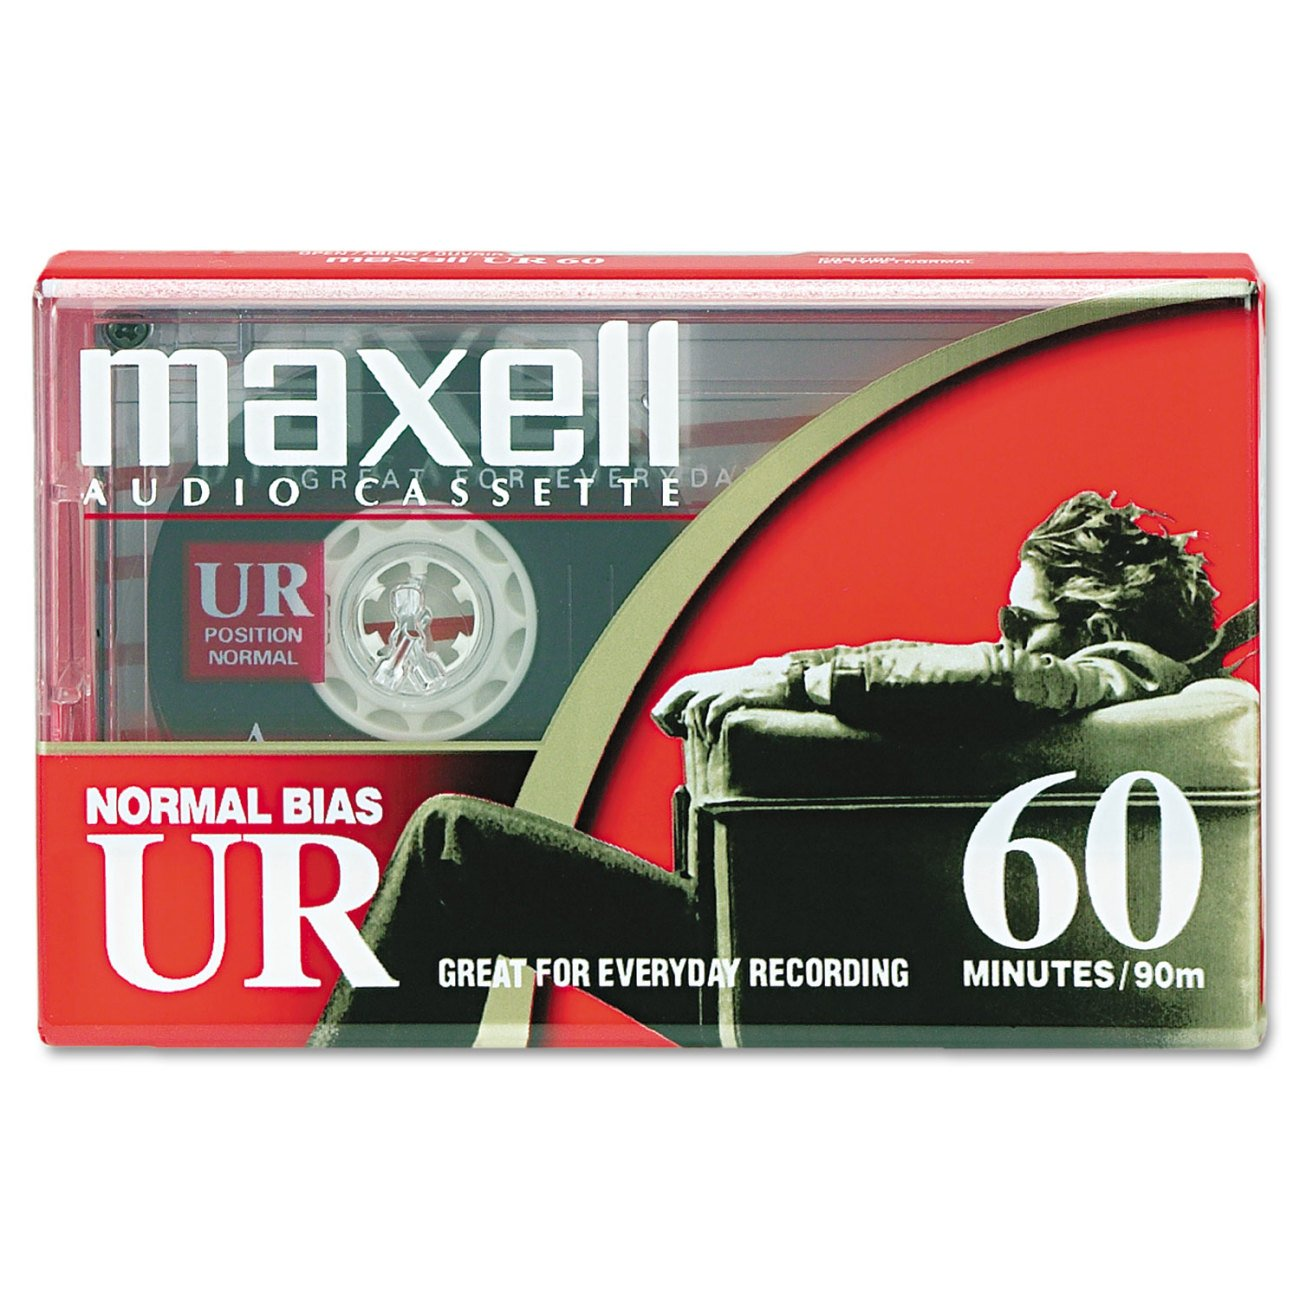 Dictation & Audio Cassette, Normal Bias, 60 Minutes (30 x 2) Maxell 109010 Accessory Consumer Accessories